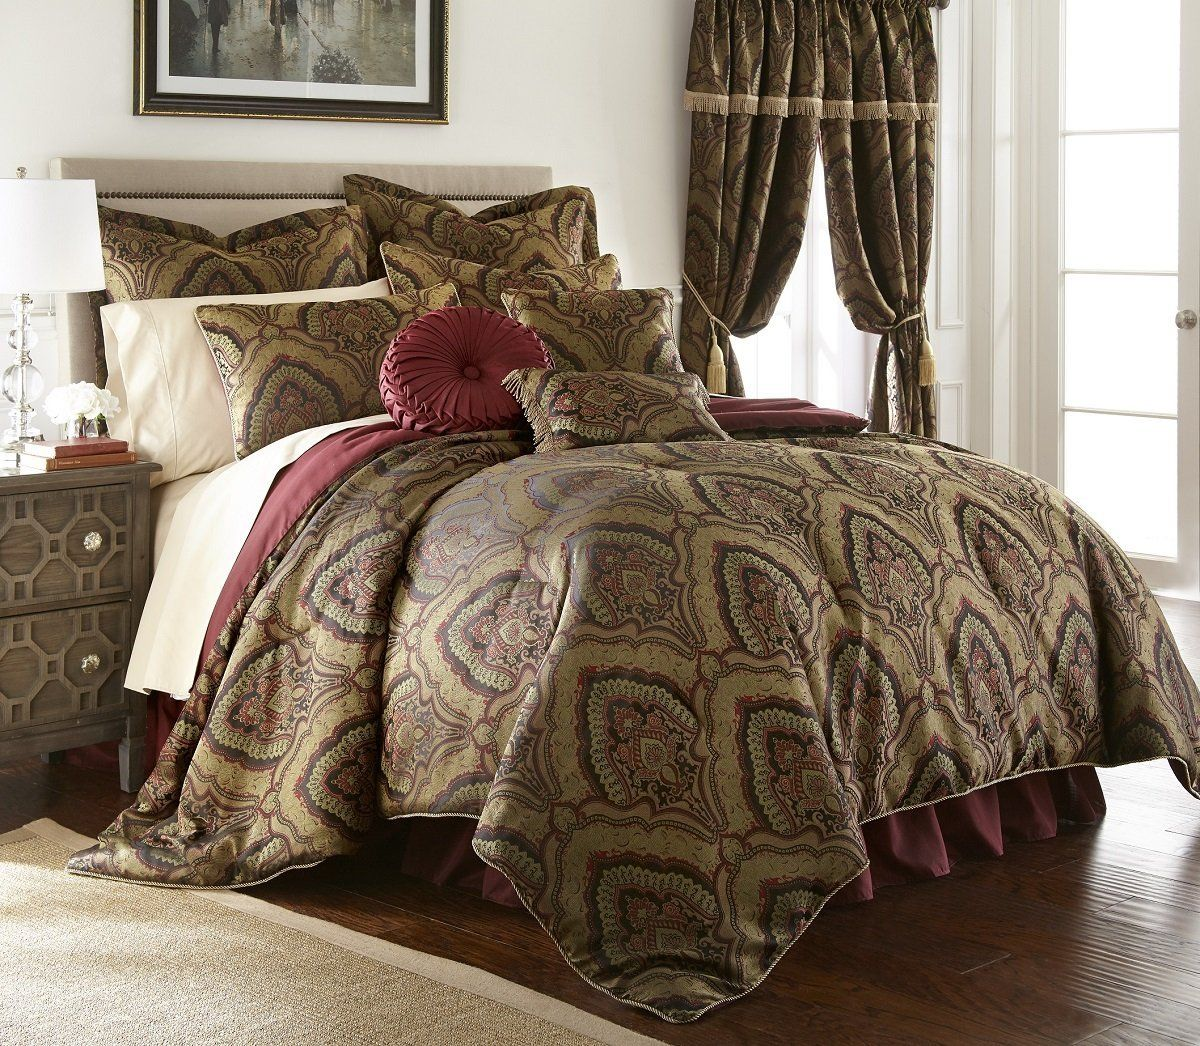 s dallas with sets oversized penney c longoria jcpenney news retail bedding comforter designs eva from j interior jcp approved decor penneys for queen happy home